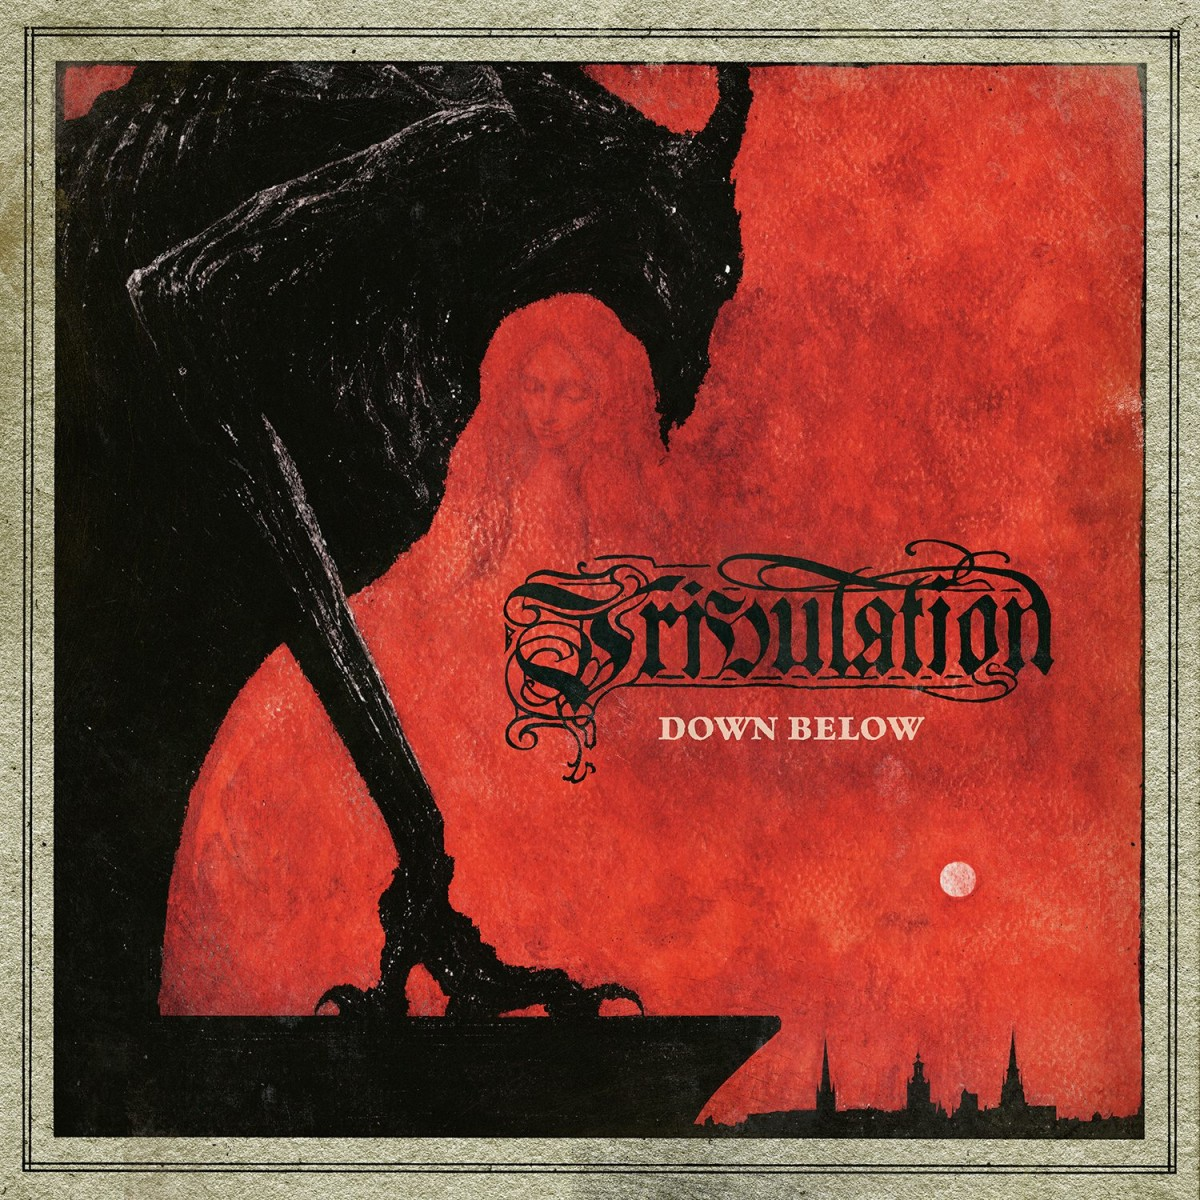 tribulation down below cover 2018 1200x1200 Top 25 Metal + Hard Rock Albums of 2018